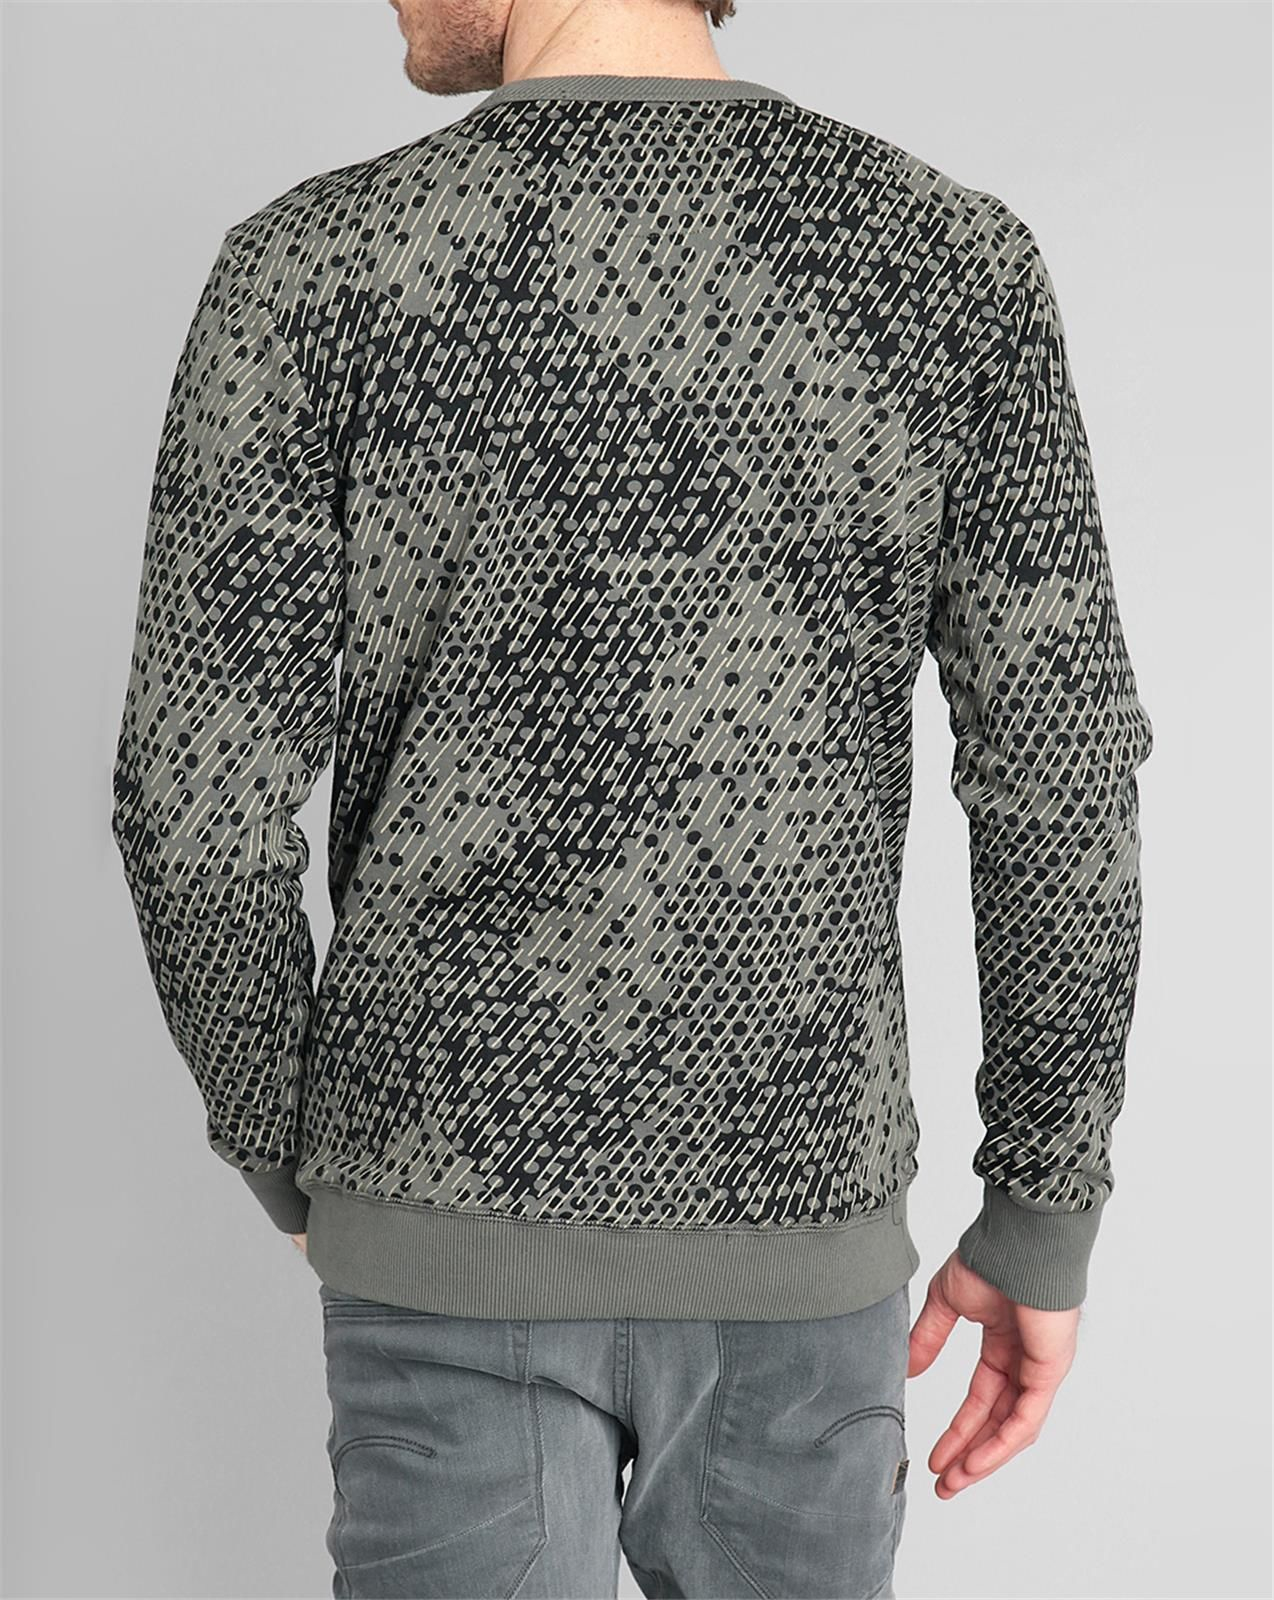 g star raw round neck khaki sweater with camouflage motif and g star logo in natural for men lyst. Black Bedroom Furniture Sets. Home Design Ideas